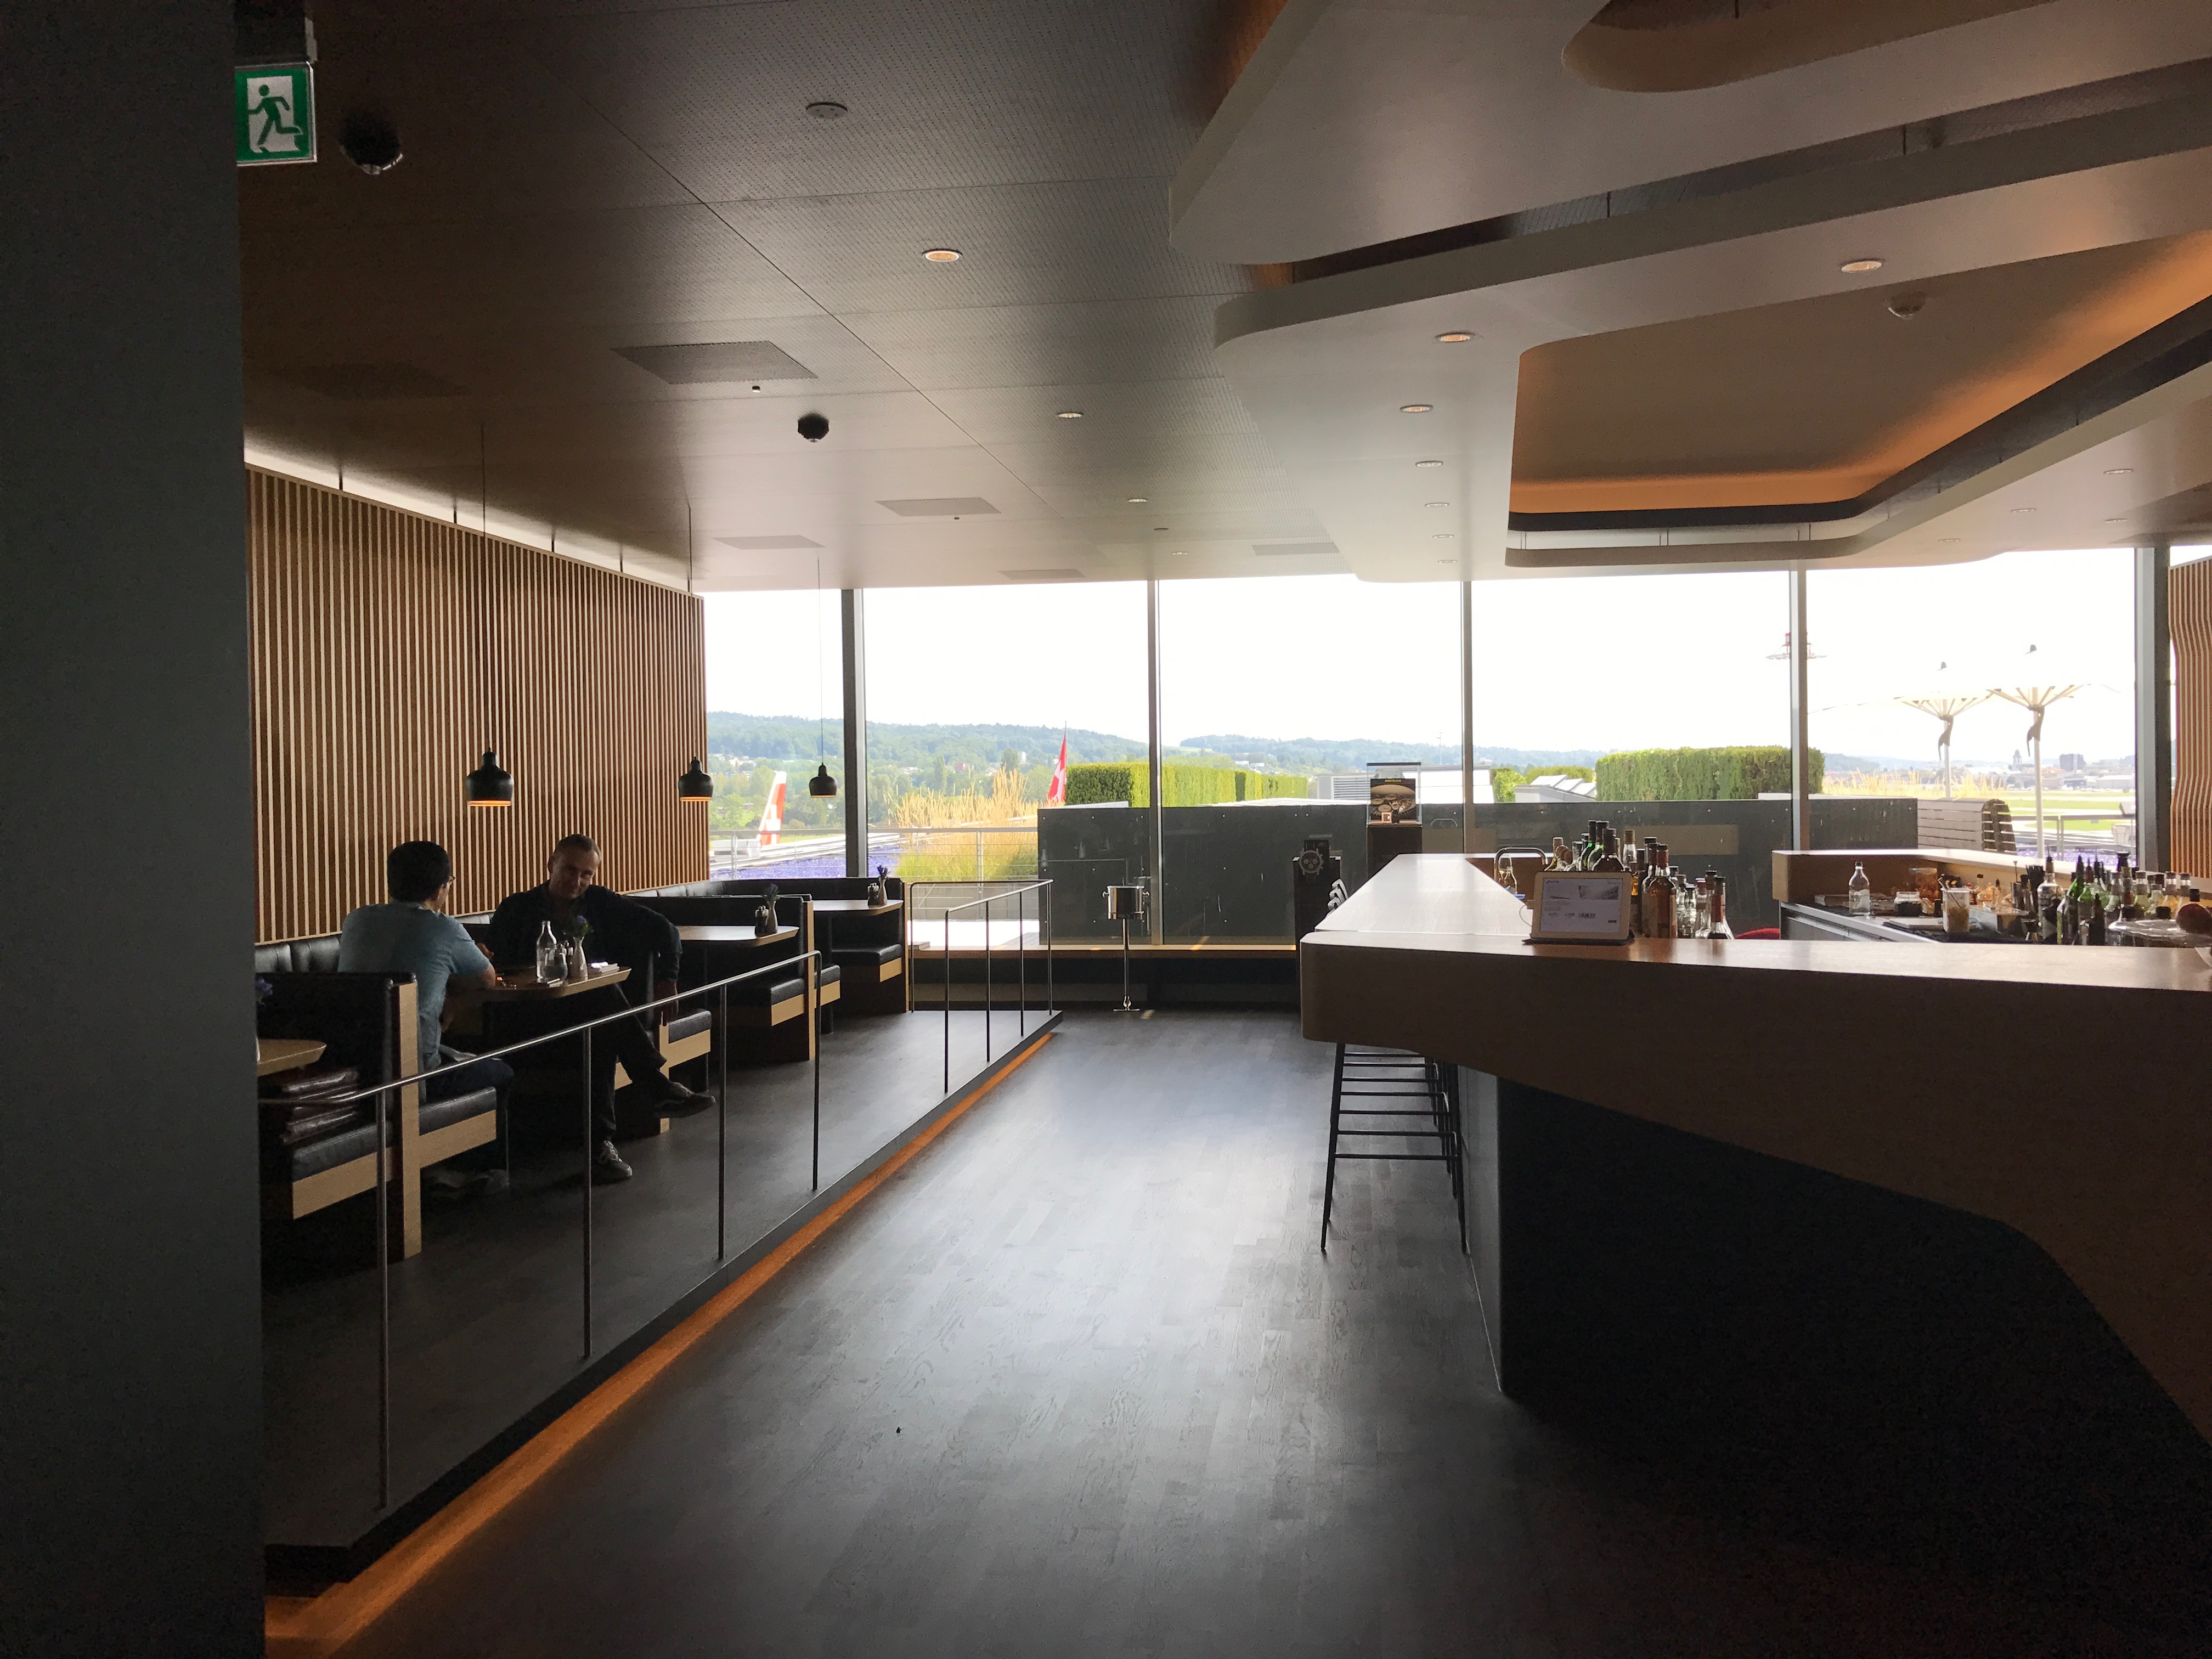 Swiss First Class Lounge at Zurich lounging area